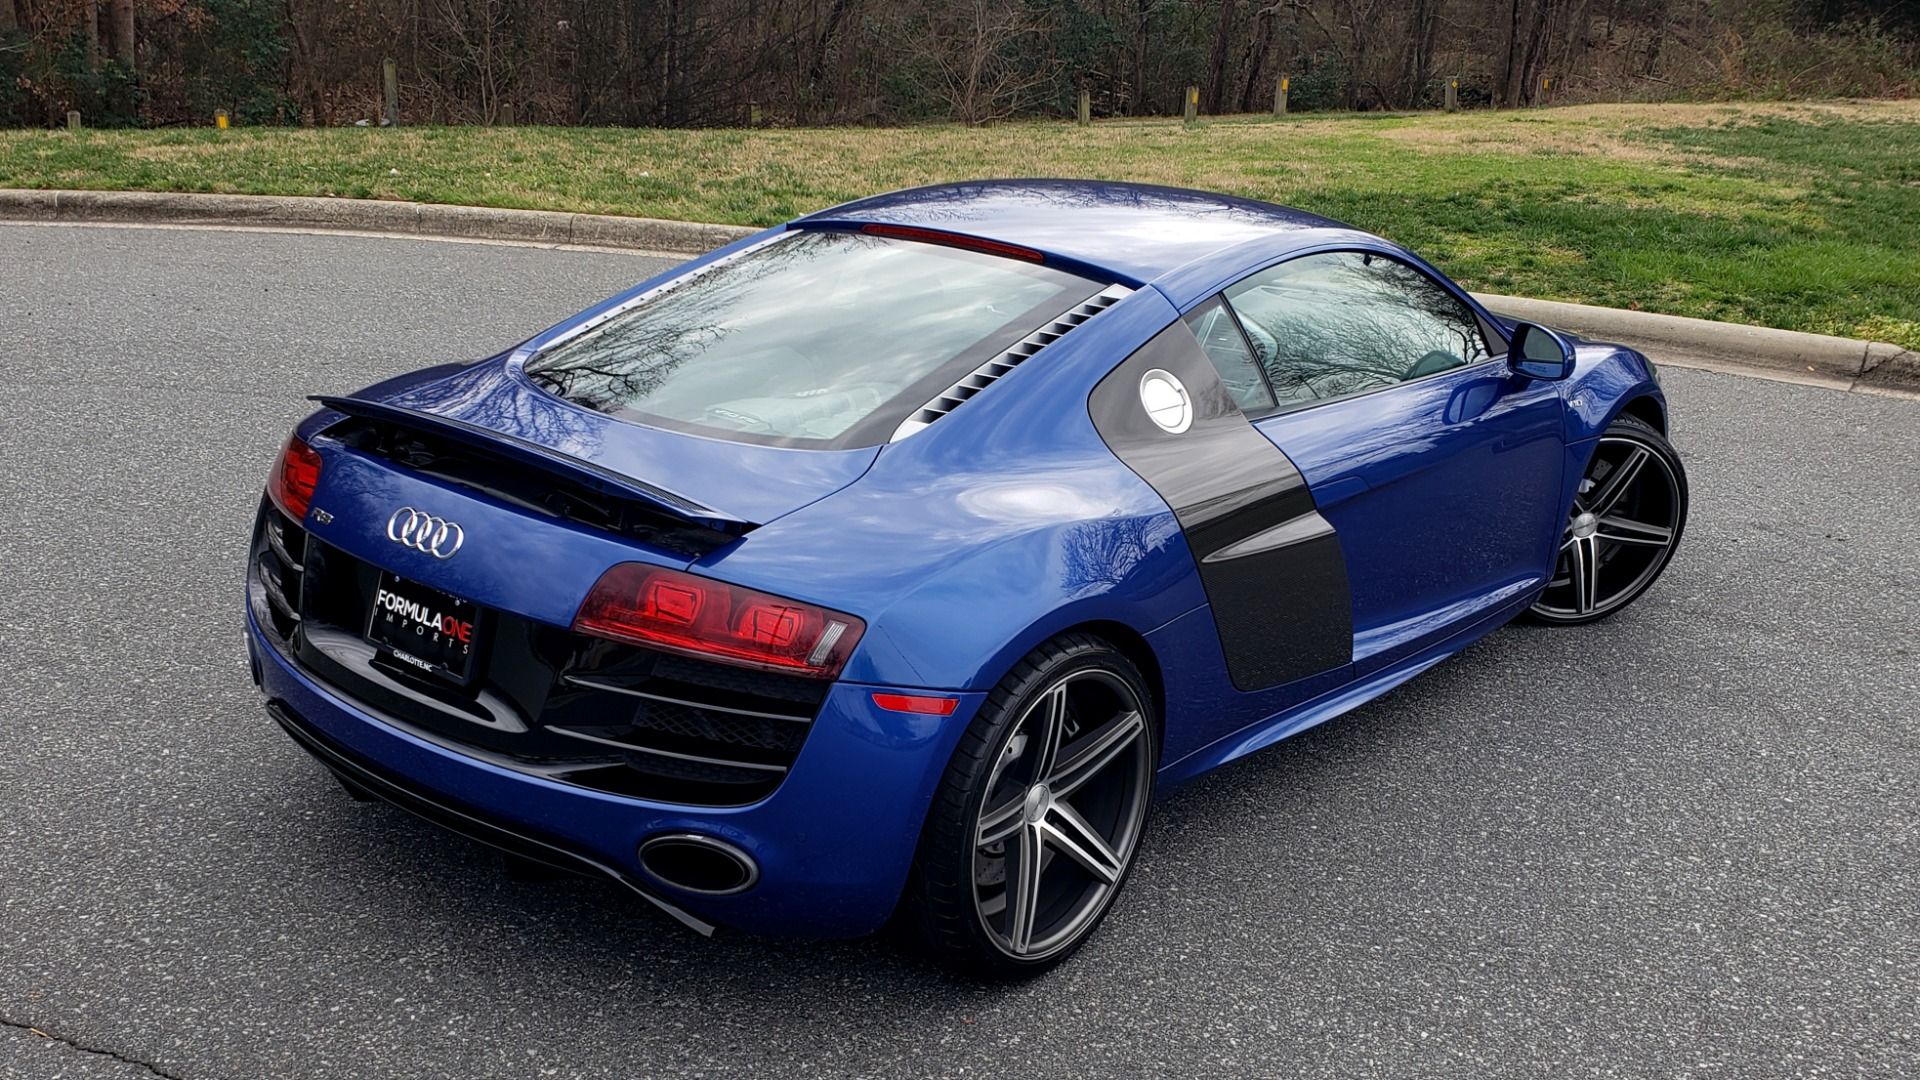 Used 2010 Audi R8 5.2L V10 / AWD / NAV / B&O SND / HTD STS / CUSTOM EXH & WHEELS for sale $78,000 at Formula Imports in Charlotte NC 28227 9